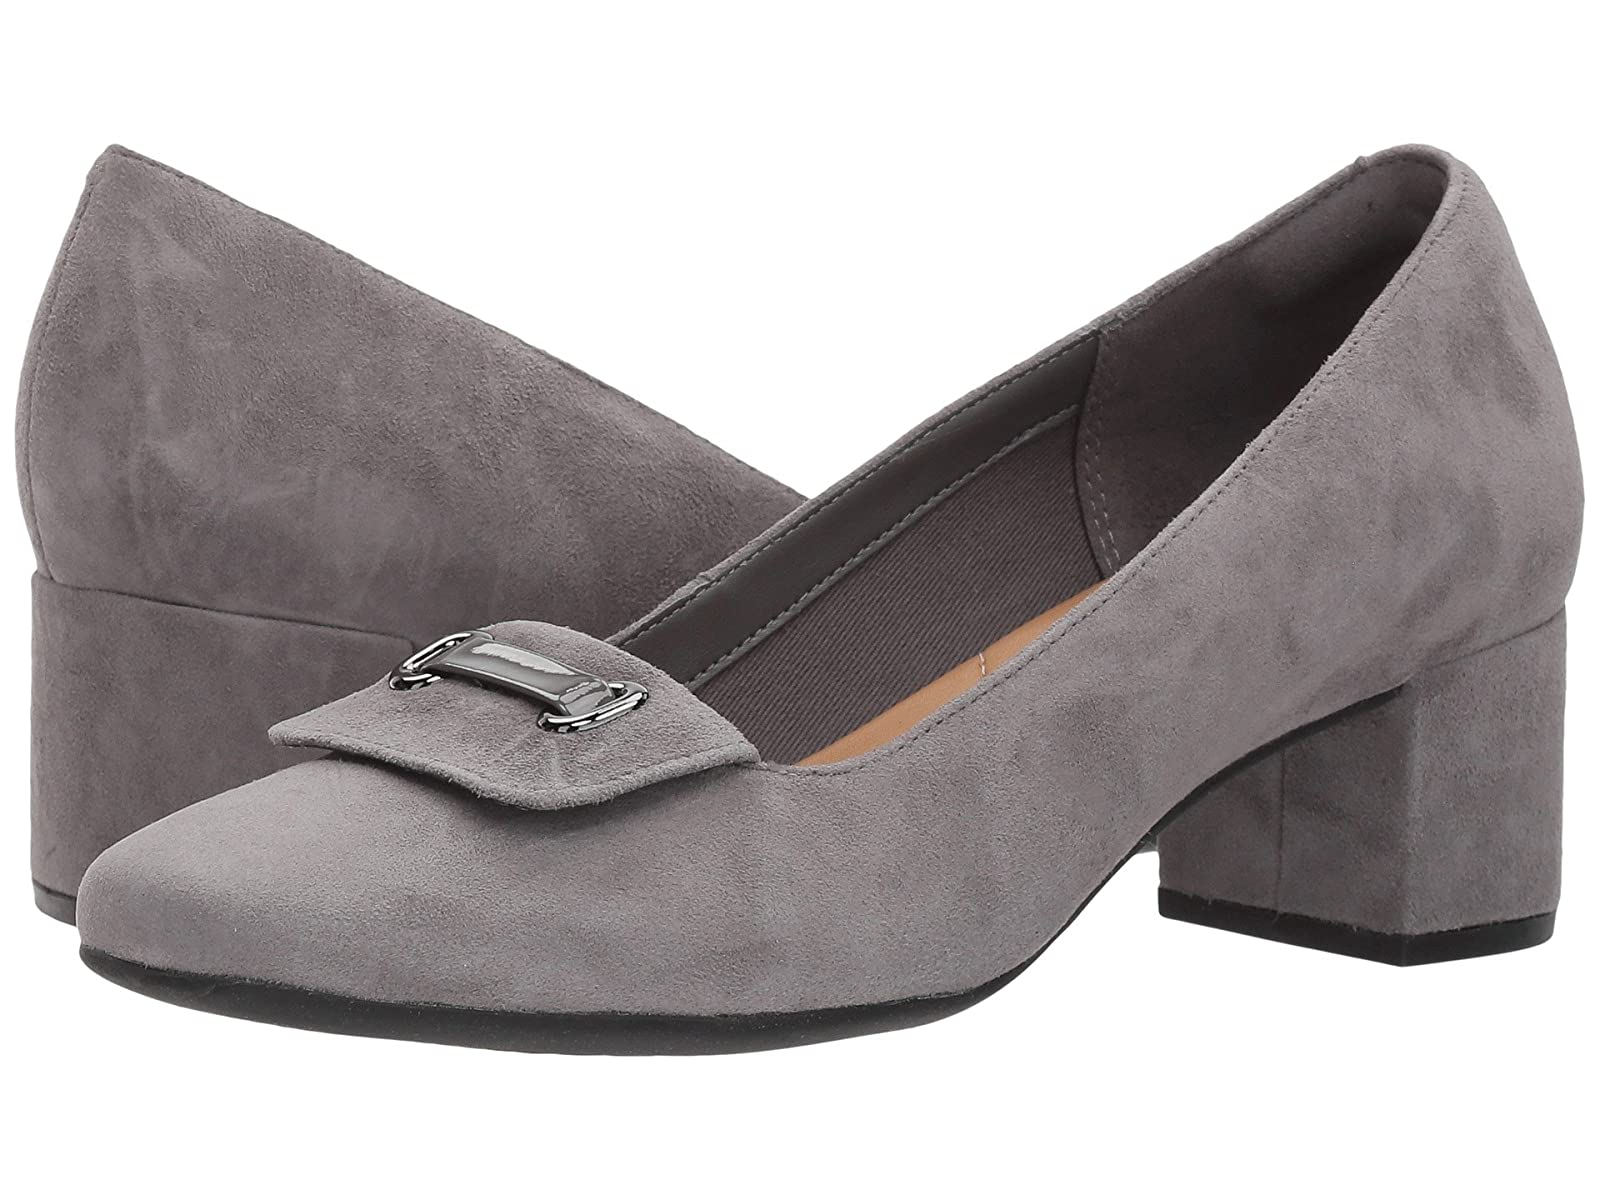 Clarks Tealia GiaCheap and distinctive eye-catching shoes